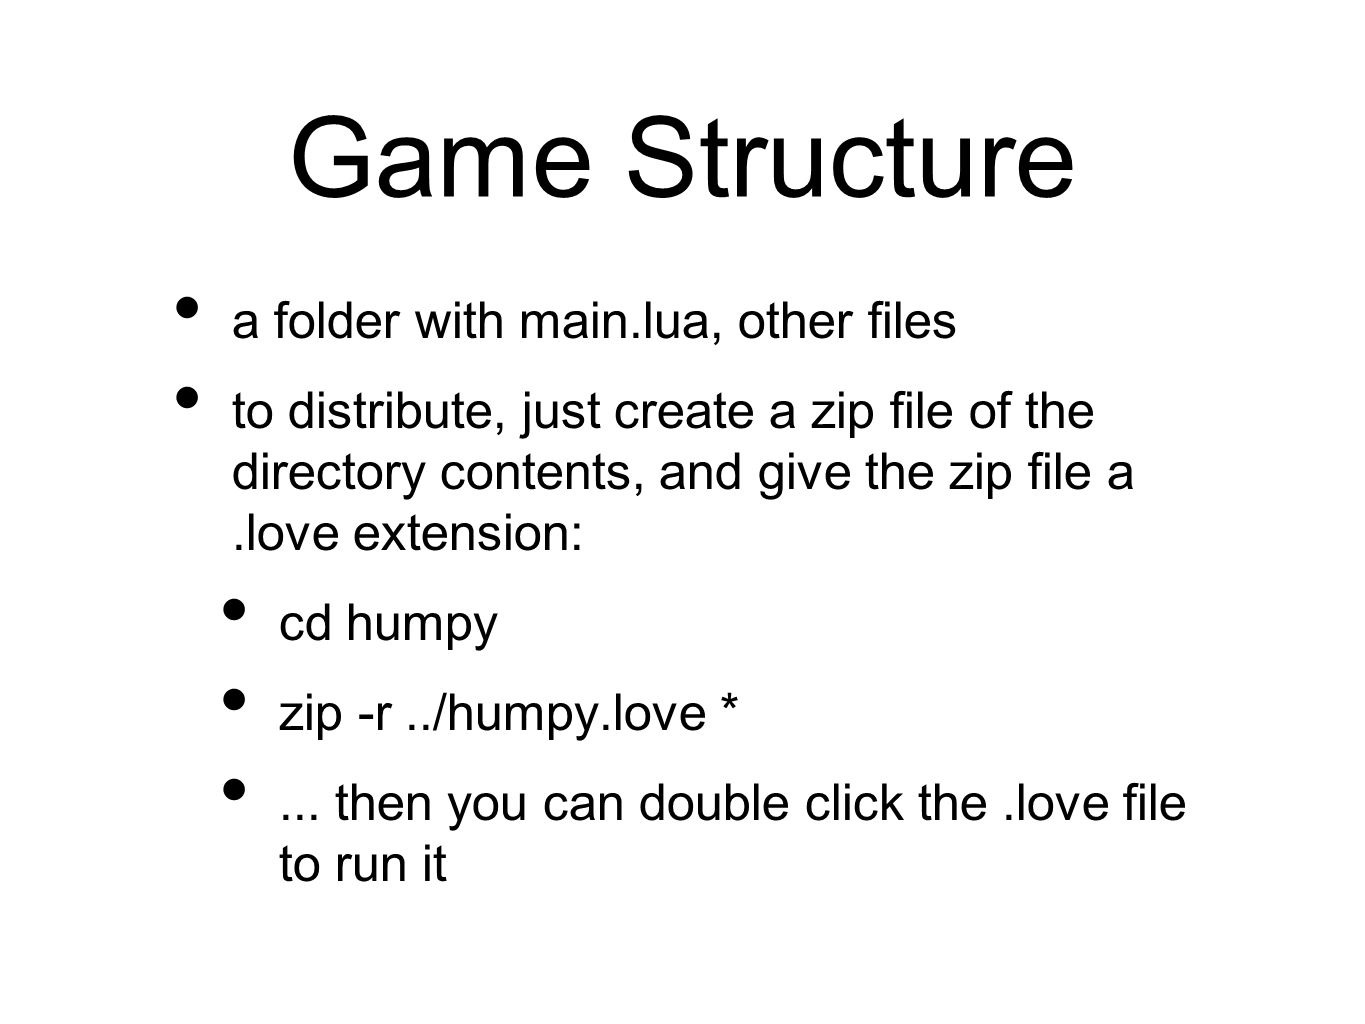 Game Structure a folder with main.lua, other files to distribute, just create a zip file of the directory contents, and give the zip file a.love extension: cd humpy zip -r../humpy.love *...